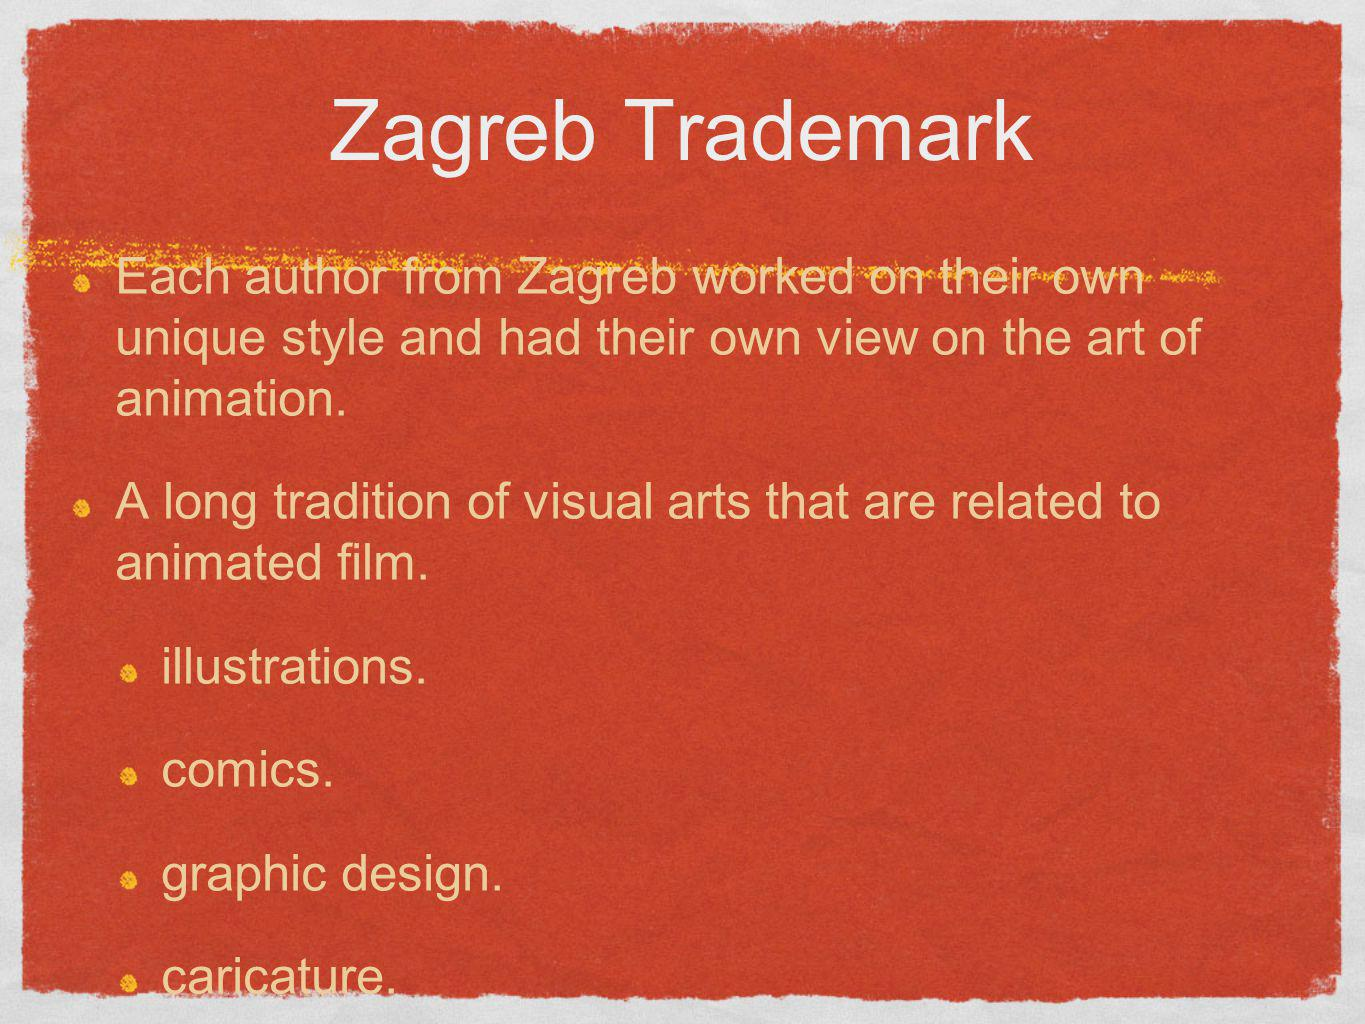 Zagreb Trademark Each author from Zagreb worked on their own unique style and had their own view on the art of animation.